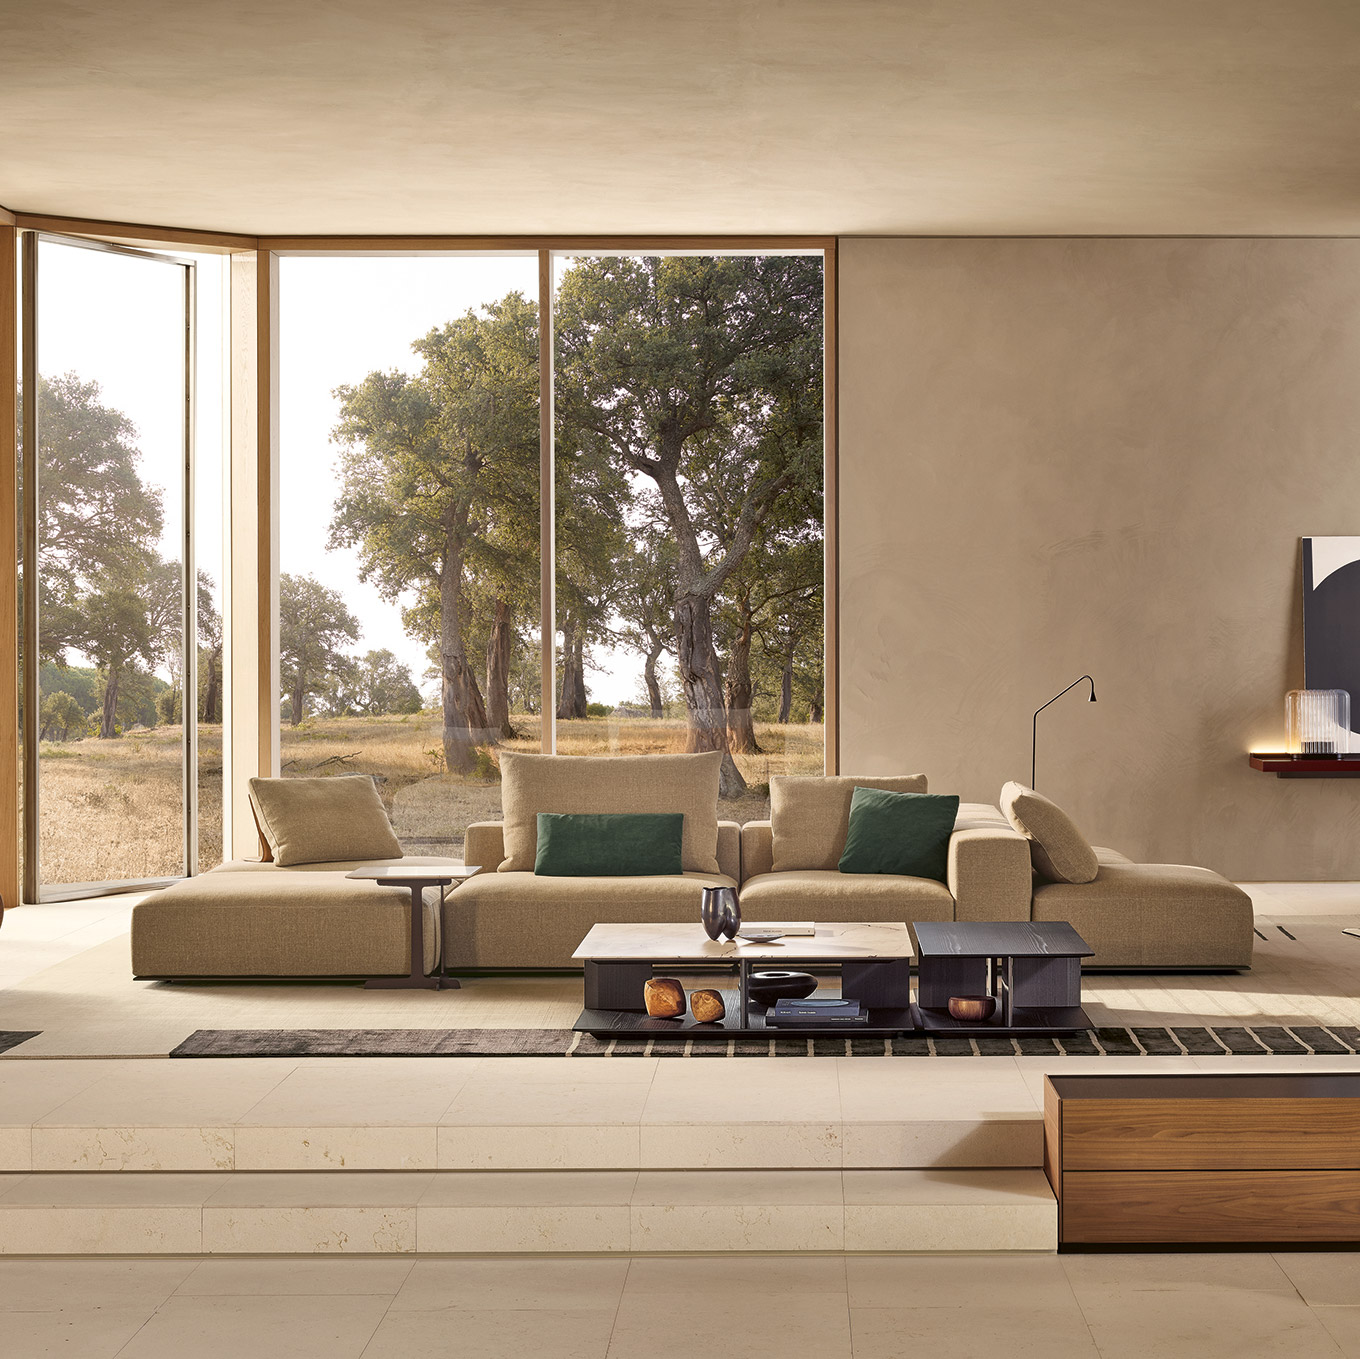 Westside sofa by Poliform in modern luxury Italian villa